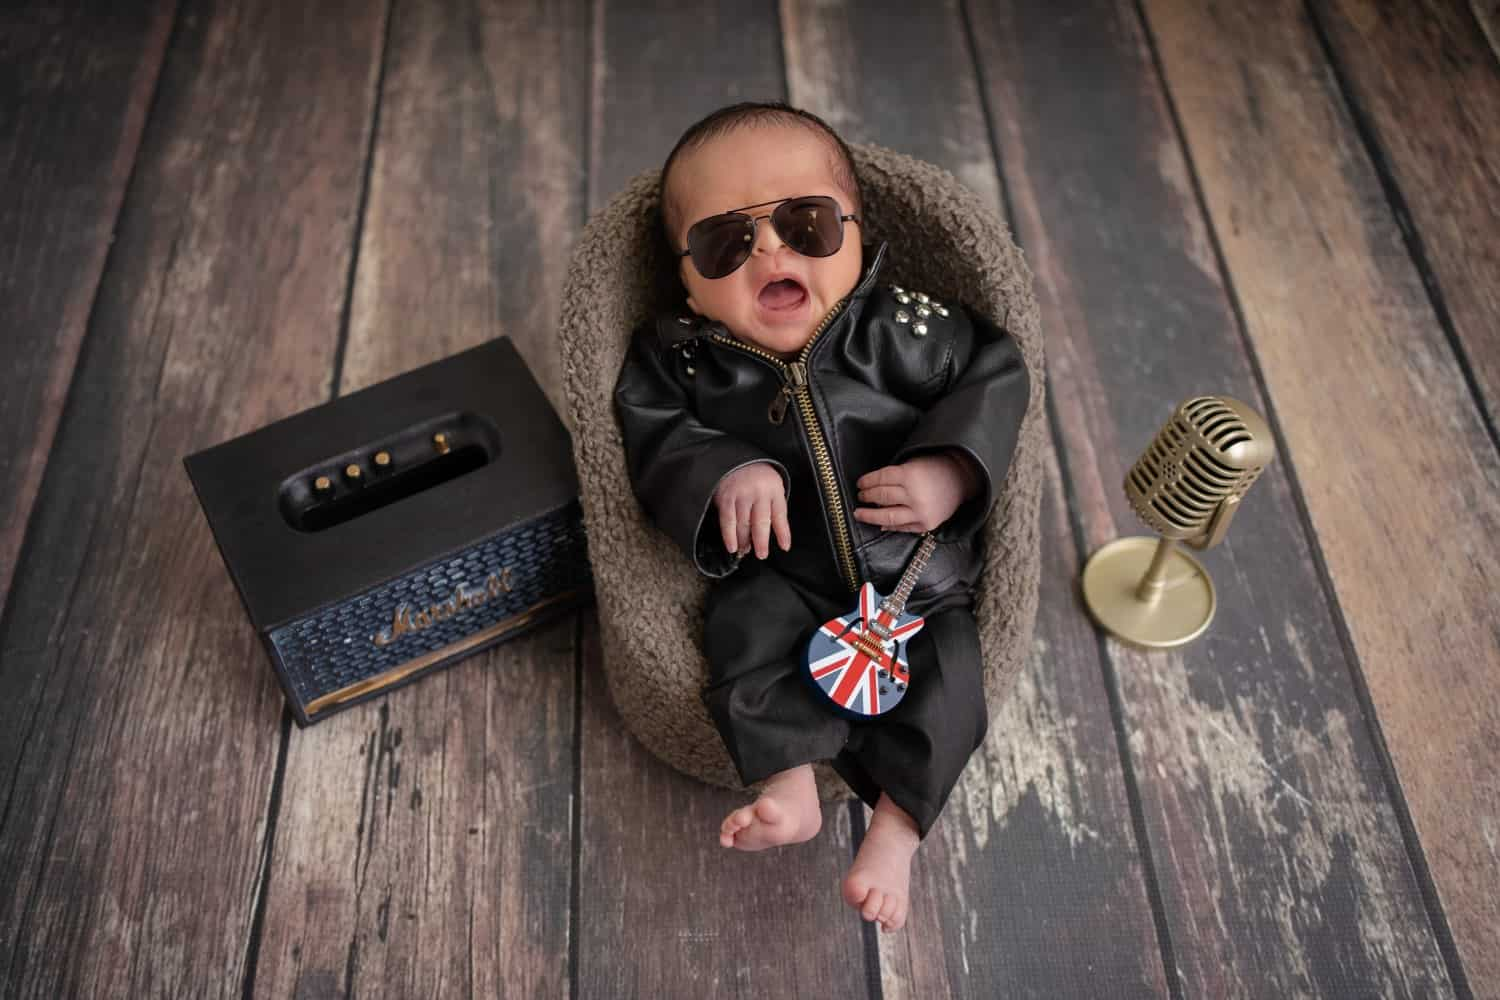 photoshoot for baby singapore newborn wearing a leather jacket and sunglasses